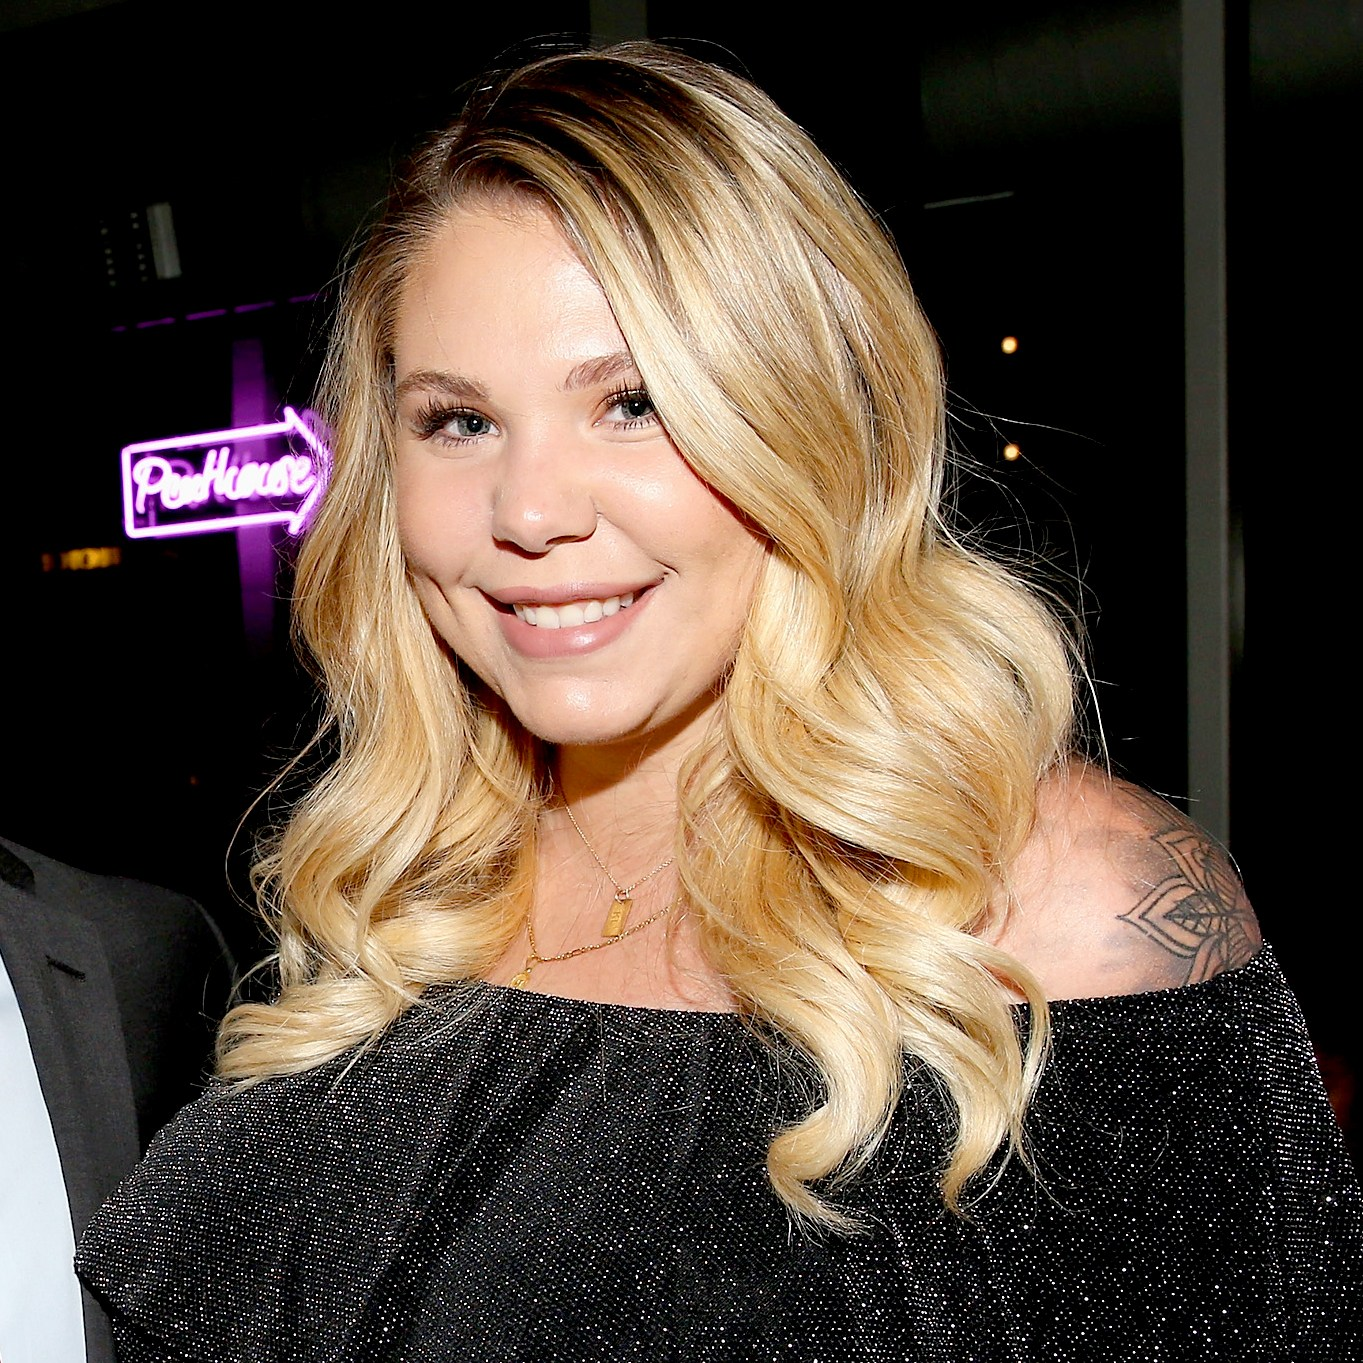 kailyn-lowry-backs-out-of-plastic-surgery